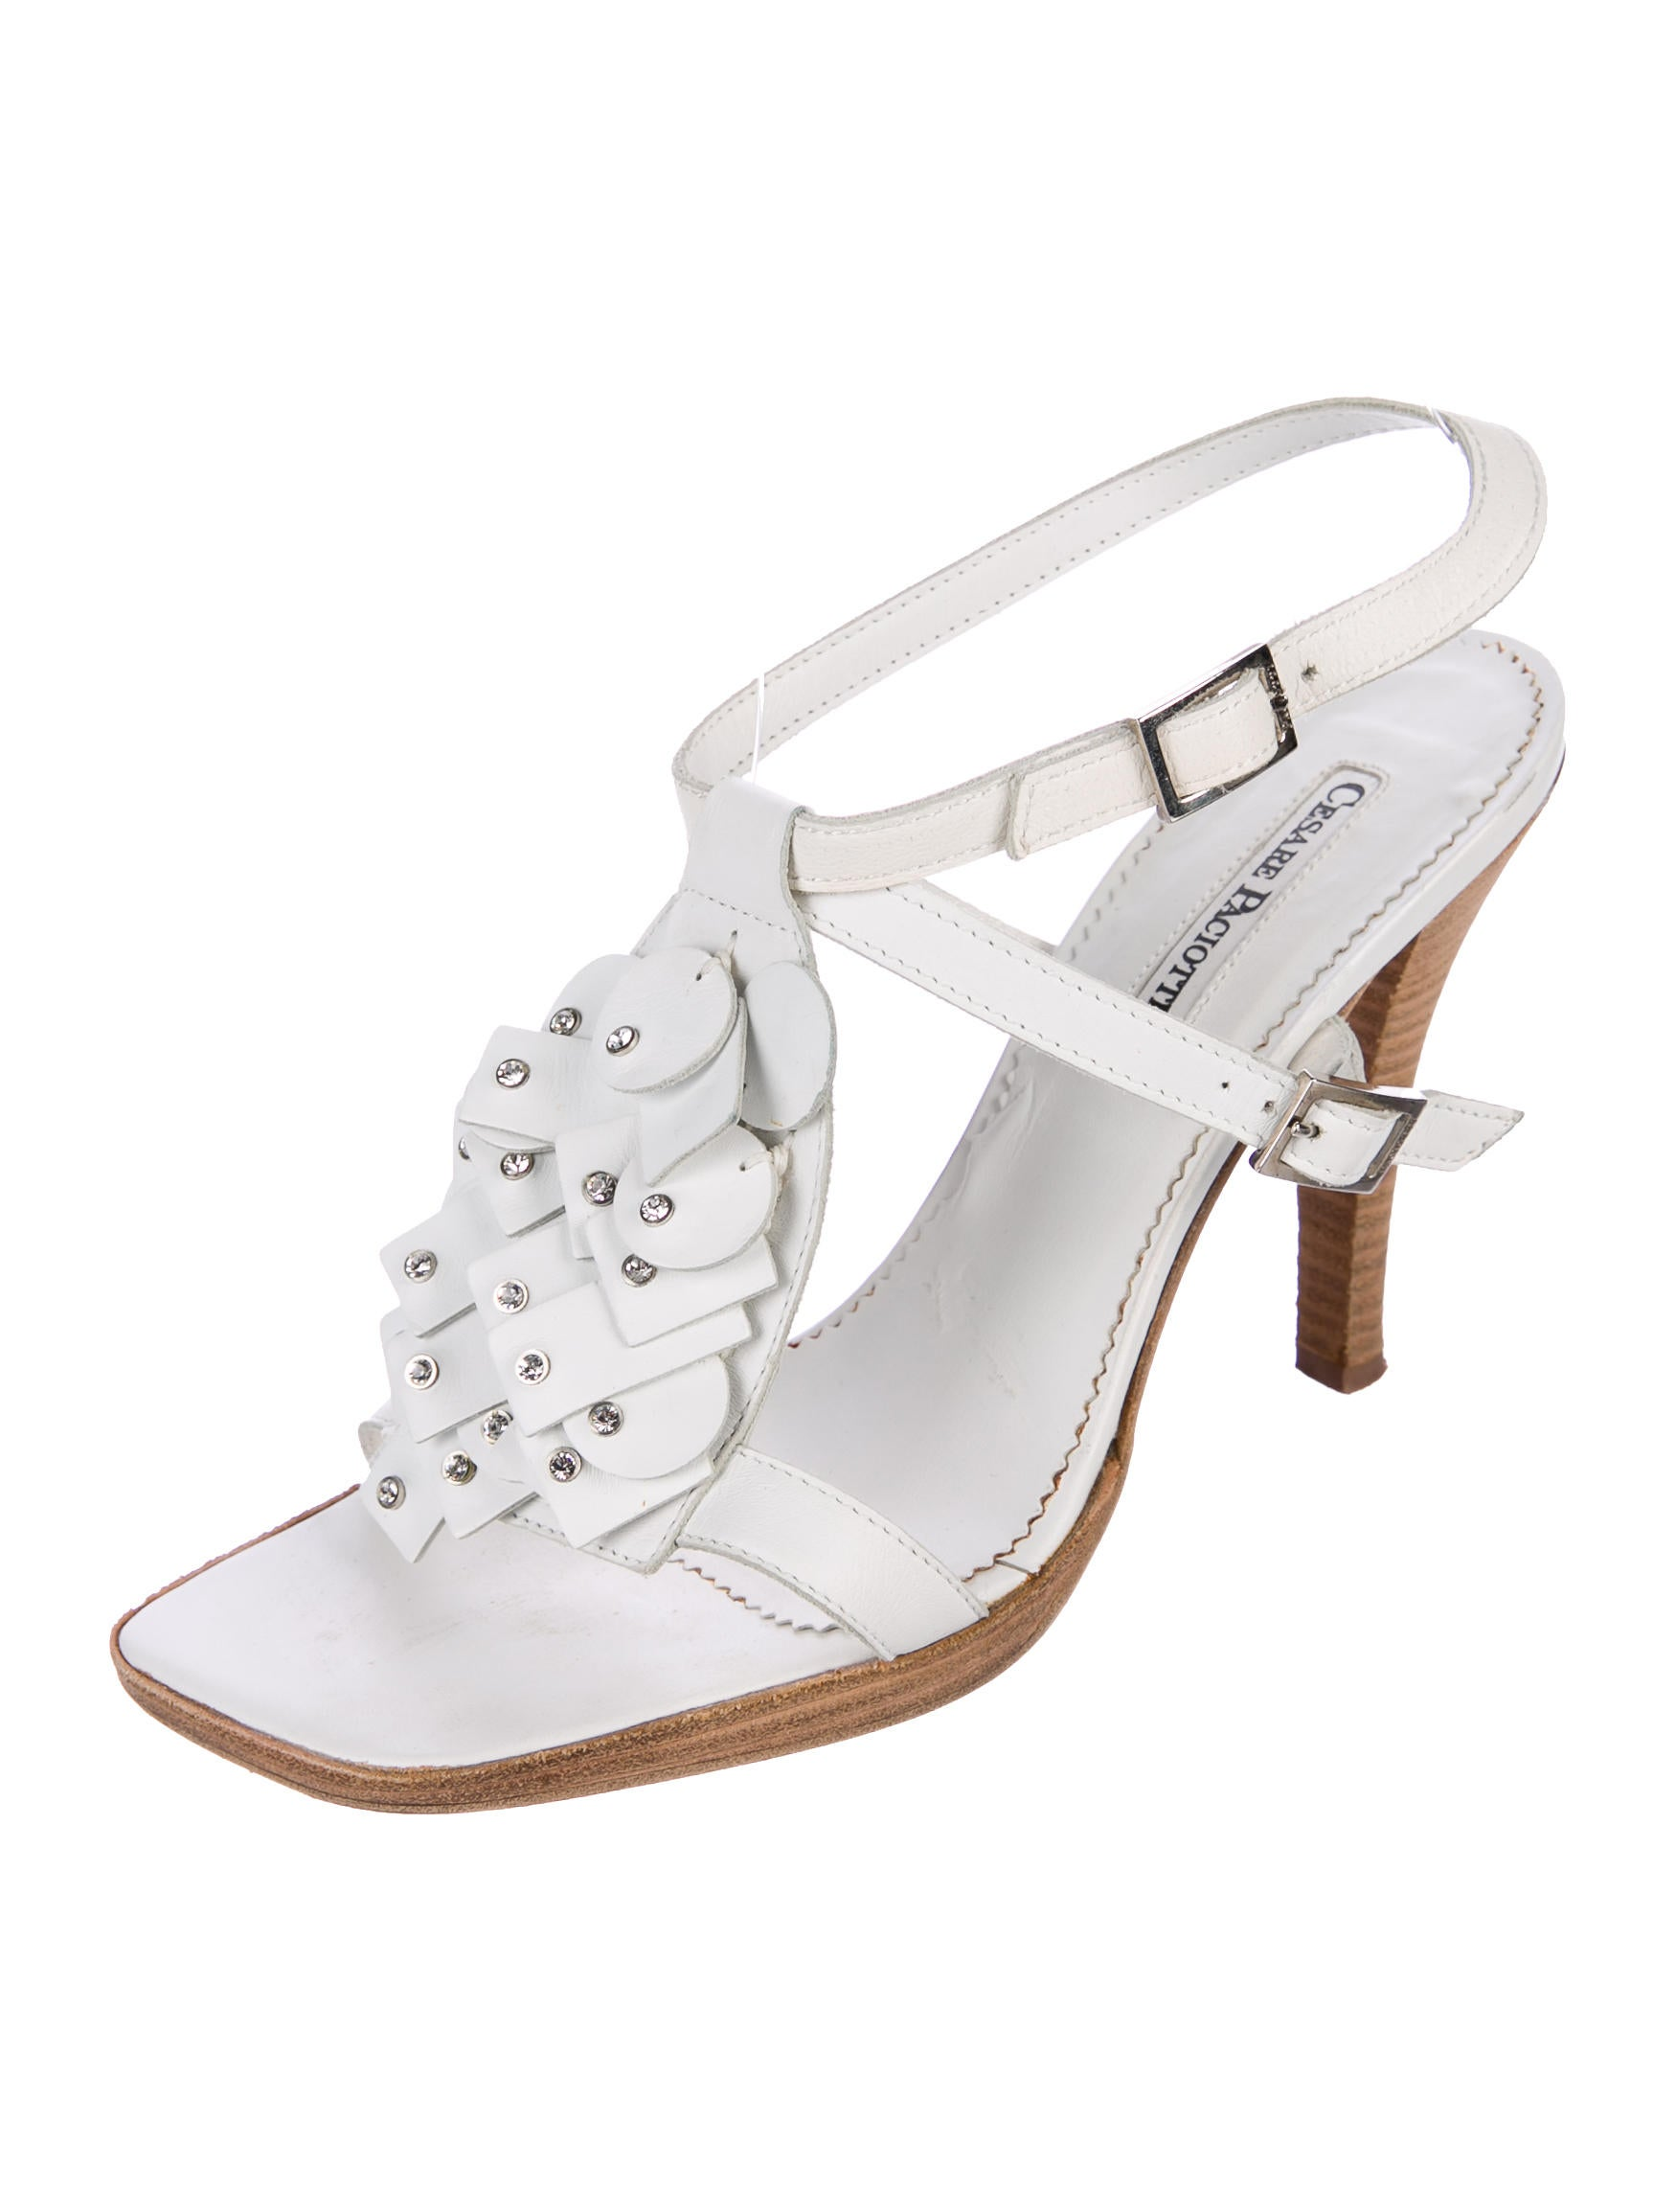 footlocker pictures online outlet good selling Cesare Paciotti Embellished Leather Sandals buy cheap order cheap sale with paypal 3t03j